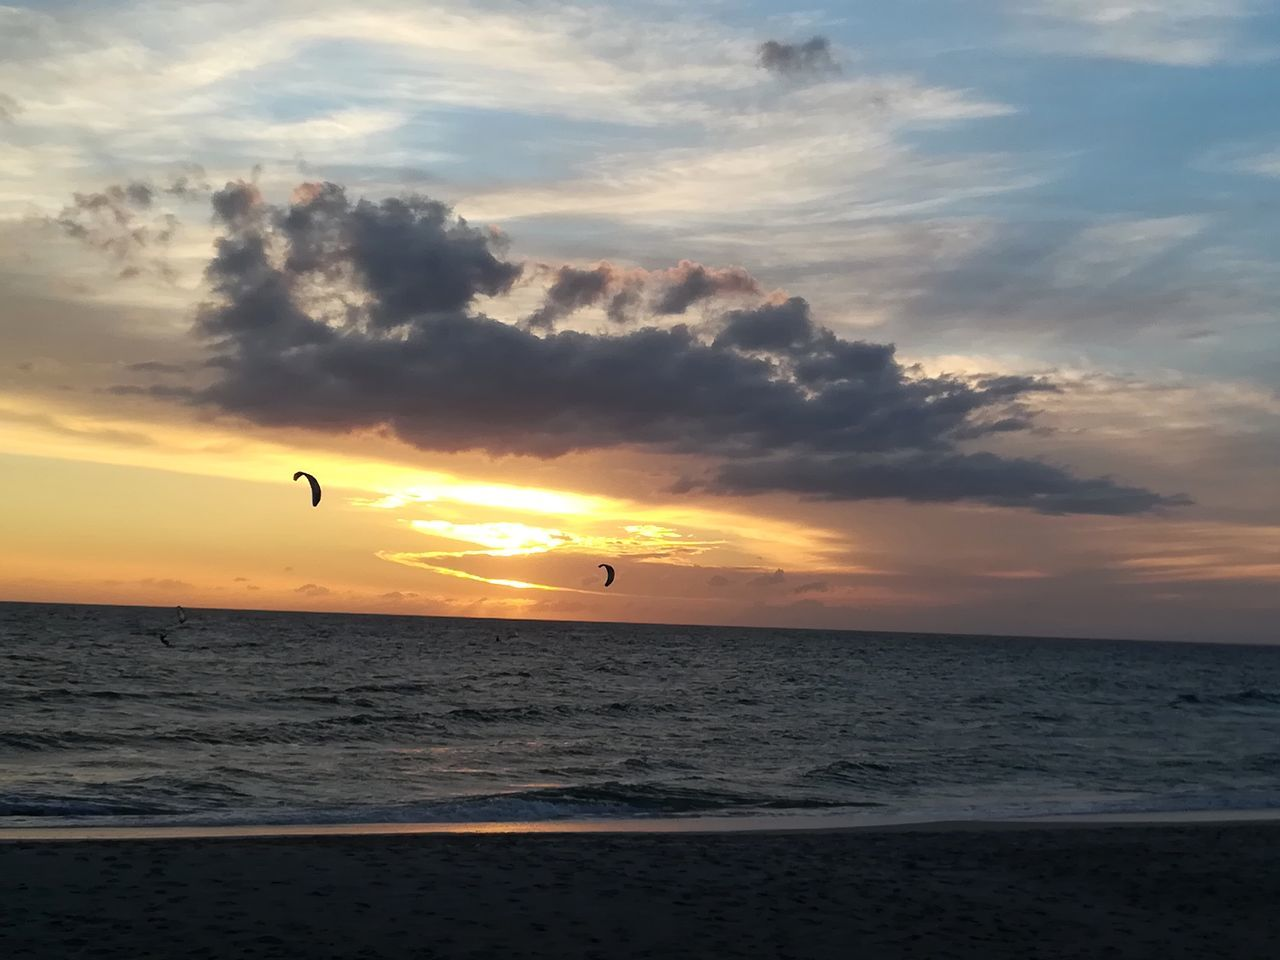 sky, sea, sunset, water, cloud - sky, horizon over water, scenics - nature, horizon, beauty in nature, beach, land, orange color, nature, tranquil scene, tranquility, sport, adventure, flying, mid-air, outdoors, kiteboarding, parasailing